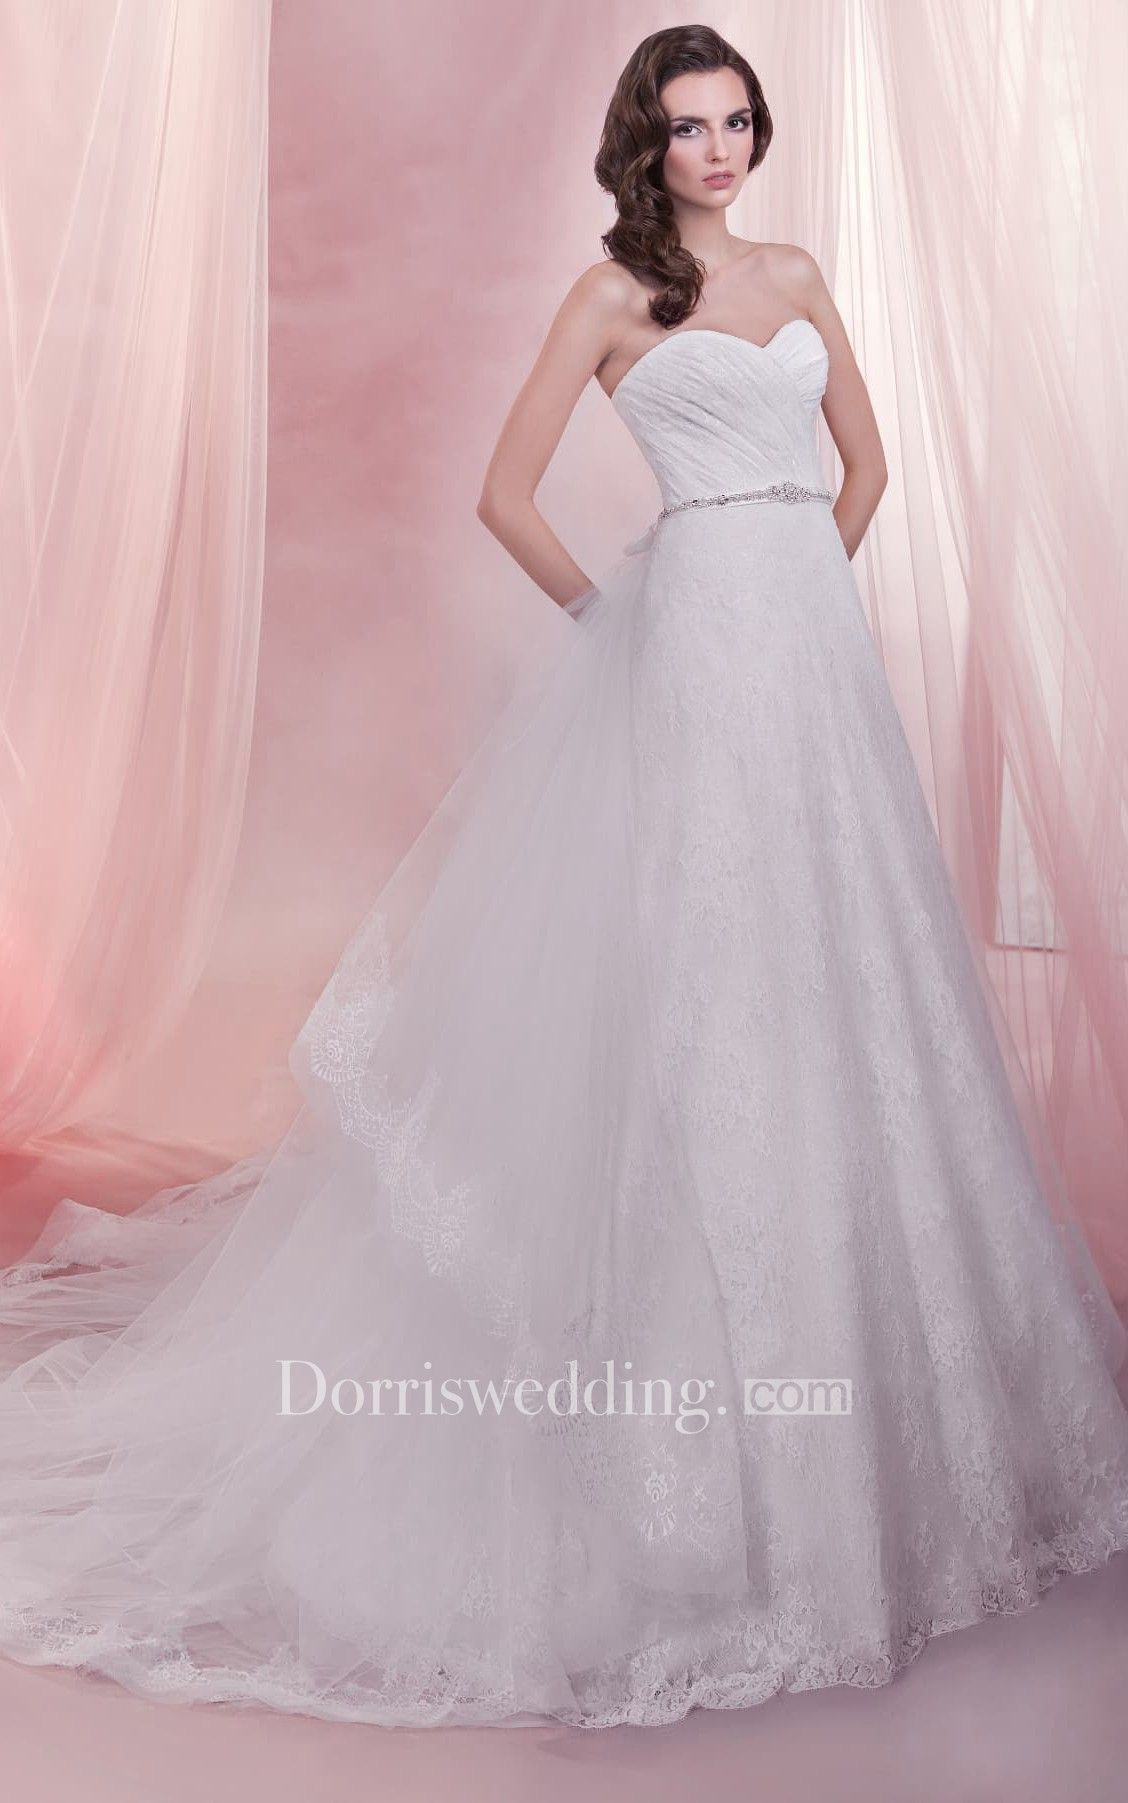 Long sweetheart aline lace wedding dress with detachable train